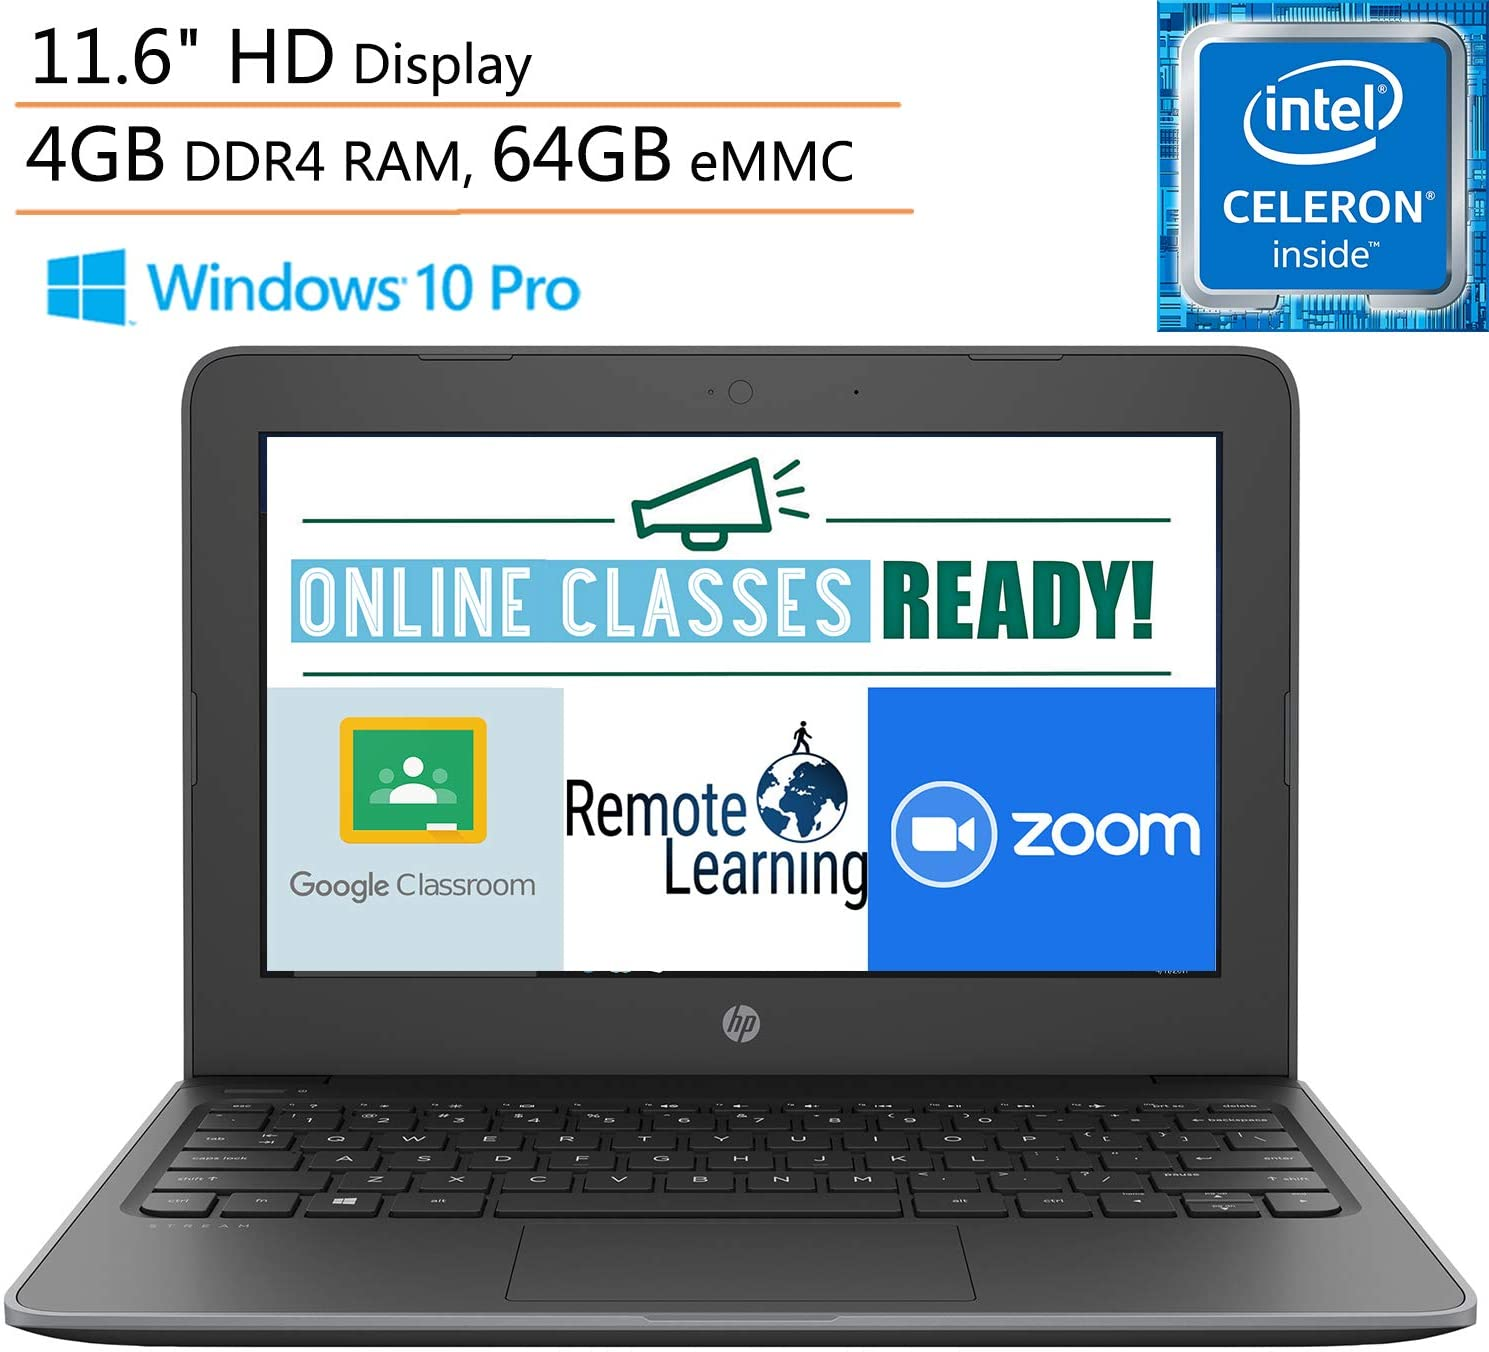 "HP Stream 11 Pro G5 11.6"" Business Laptop Computer, Intel Celeron N4000 up to 2.6GHz, 4GB DDR4 RAM, 64GB eMMC, 802.11AC WiFi, Microphones, Webcam, Windows 10 Pro, iPuzzle Mouse Pad, Online Class Ready"